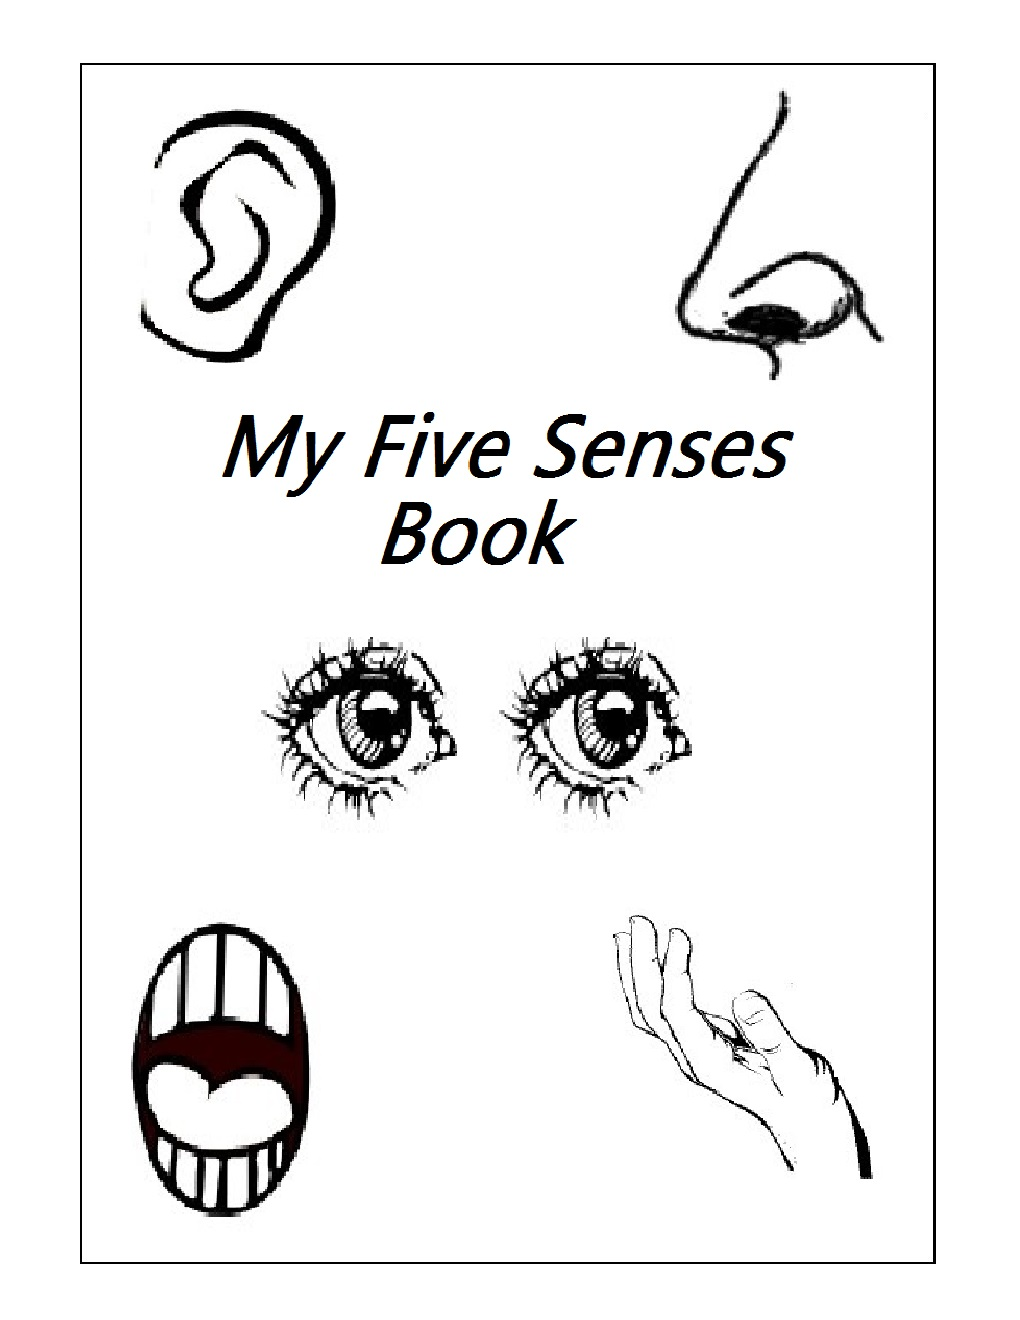 Kindergarten Worksheets Kindergarten Worksheets The 5 Senses – 5 Senses Worksheets Kindergarten